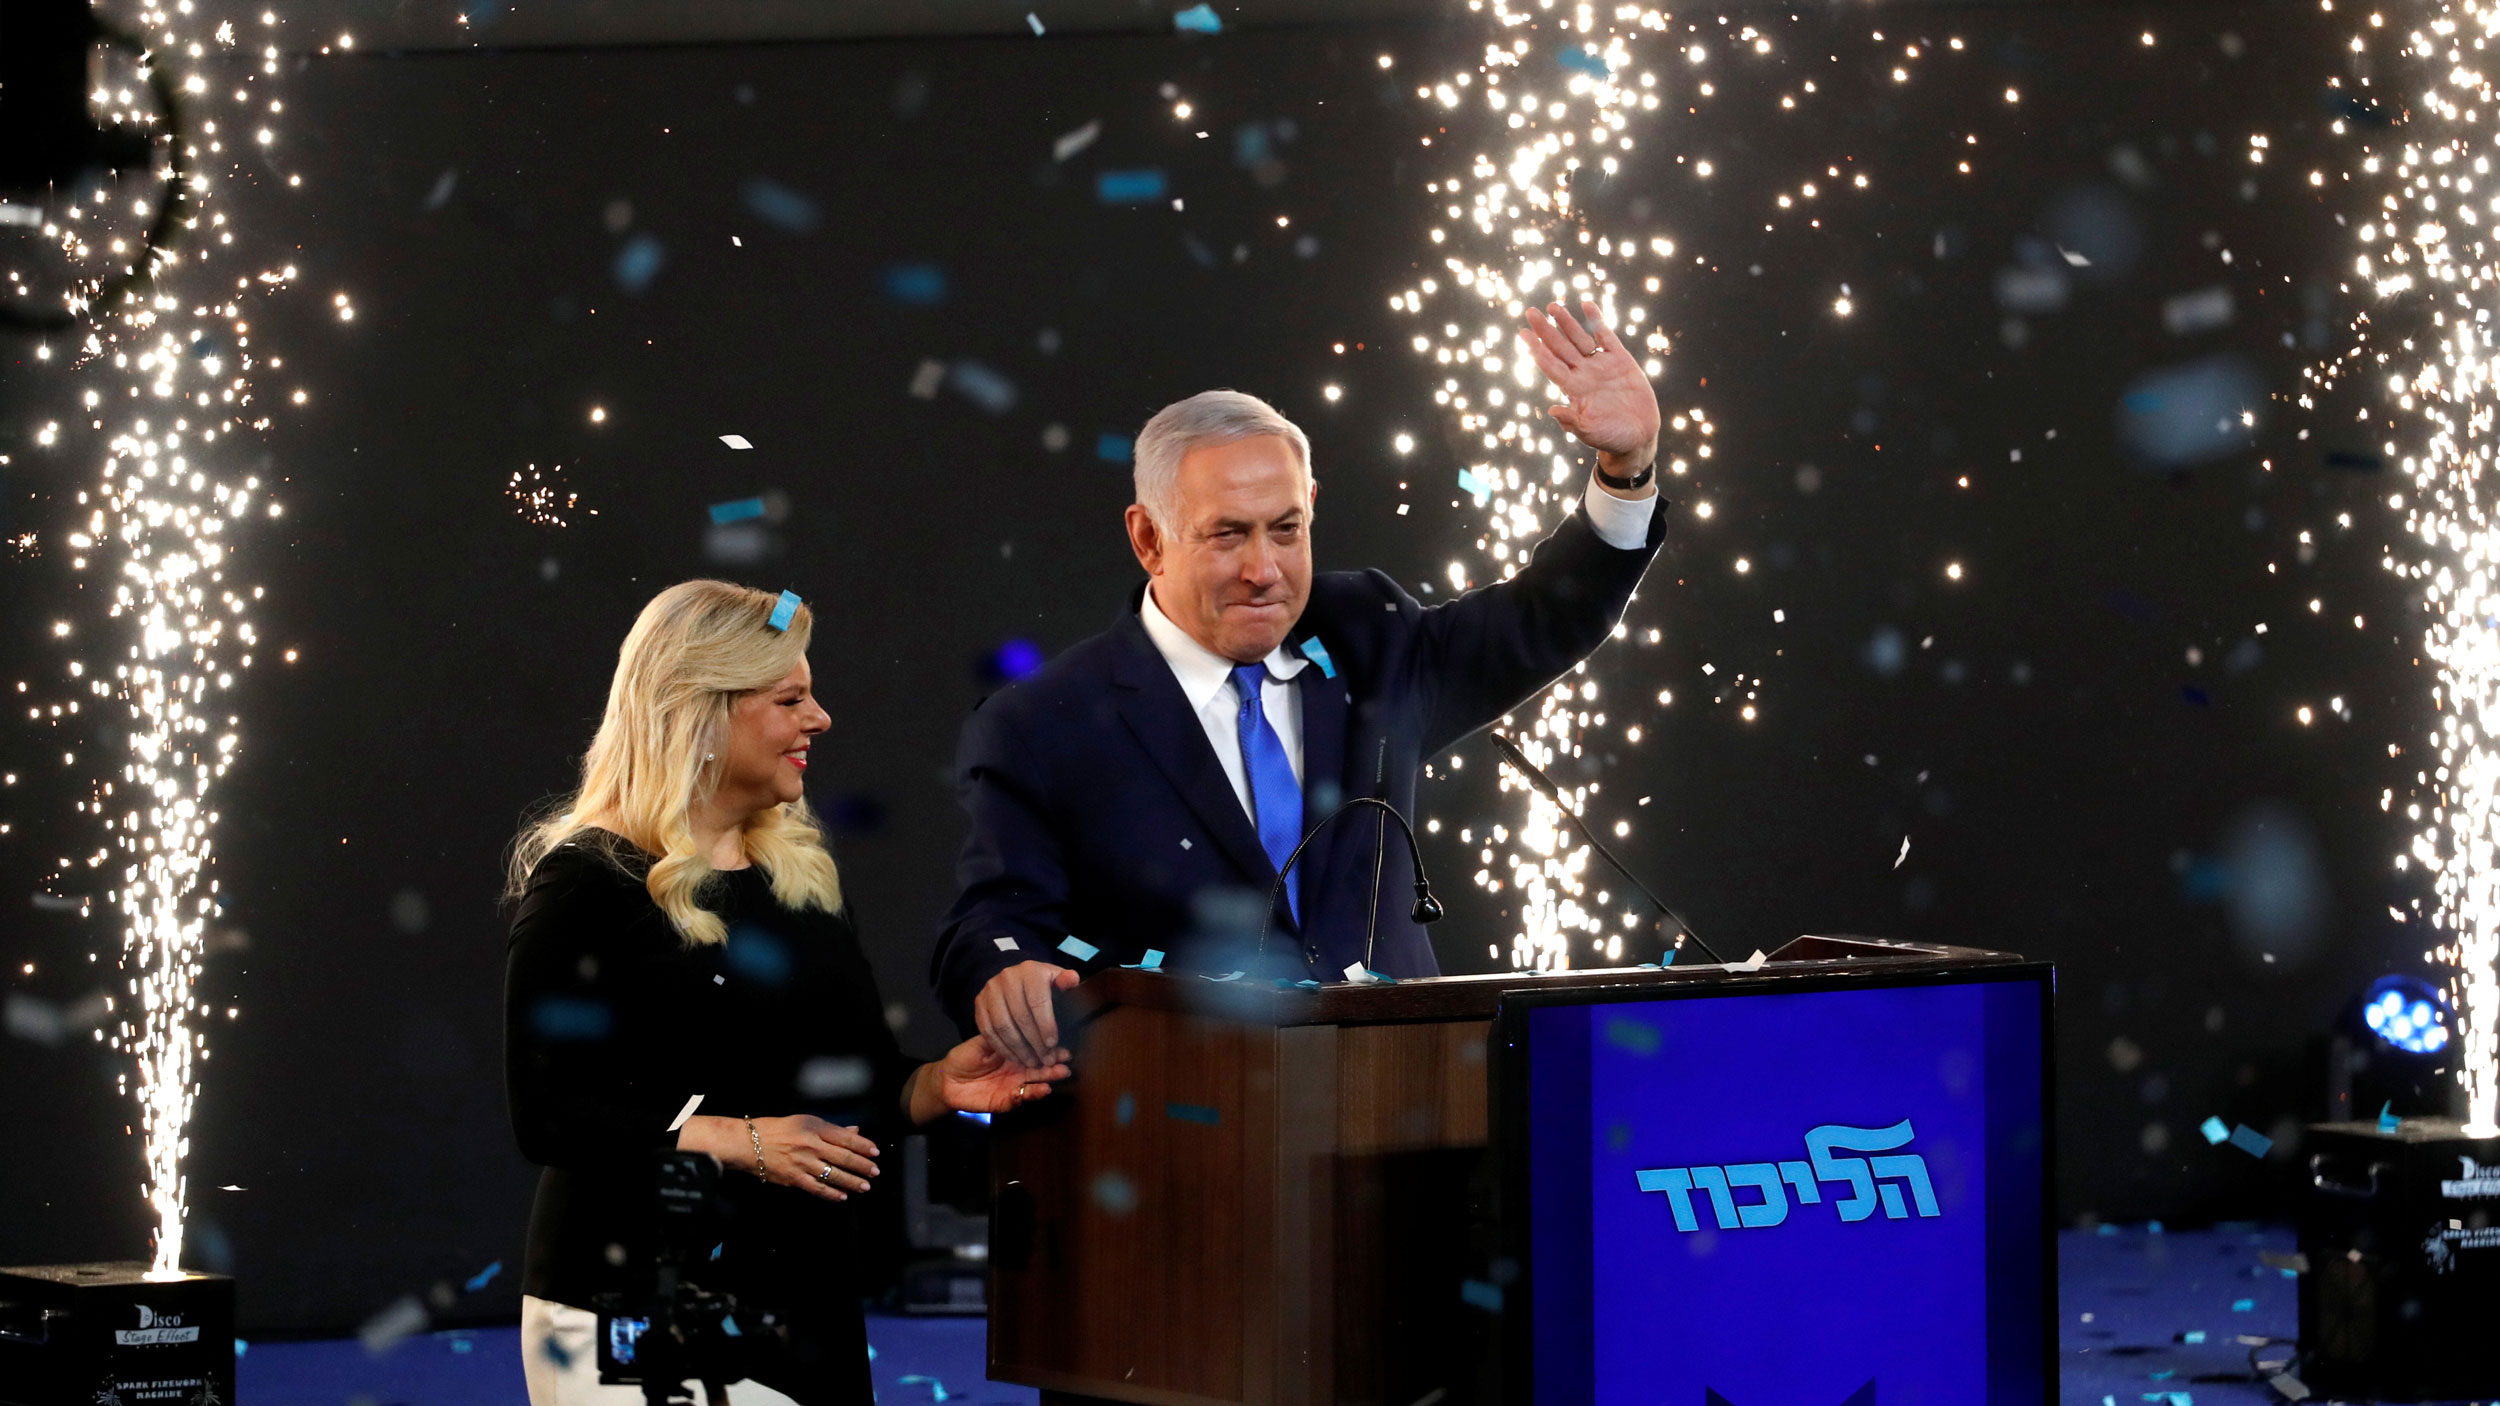 Confetti is shown falling falling with sparkling fireworks shooting up with Israeli Prime Minister Benjamin Netanyahu and his wife Sara standing on stage.